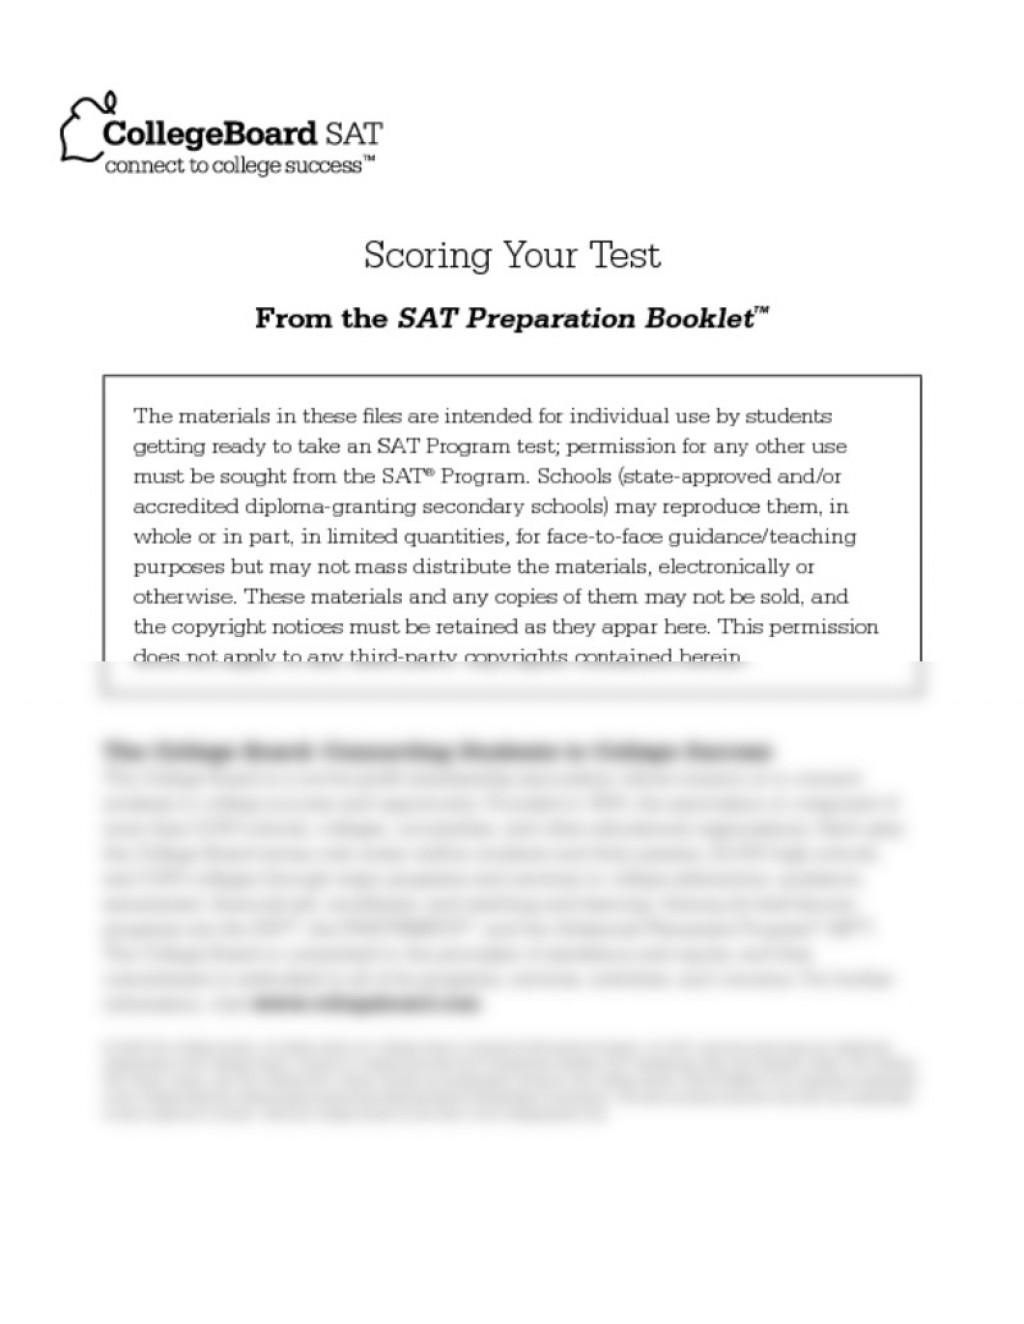 007 Essay Example Preview0 Cheap Top Writing Service Canada Australia Reviews Large